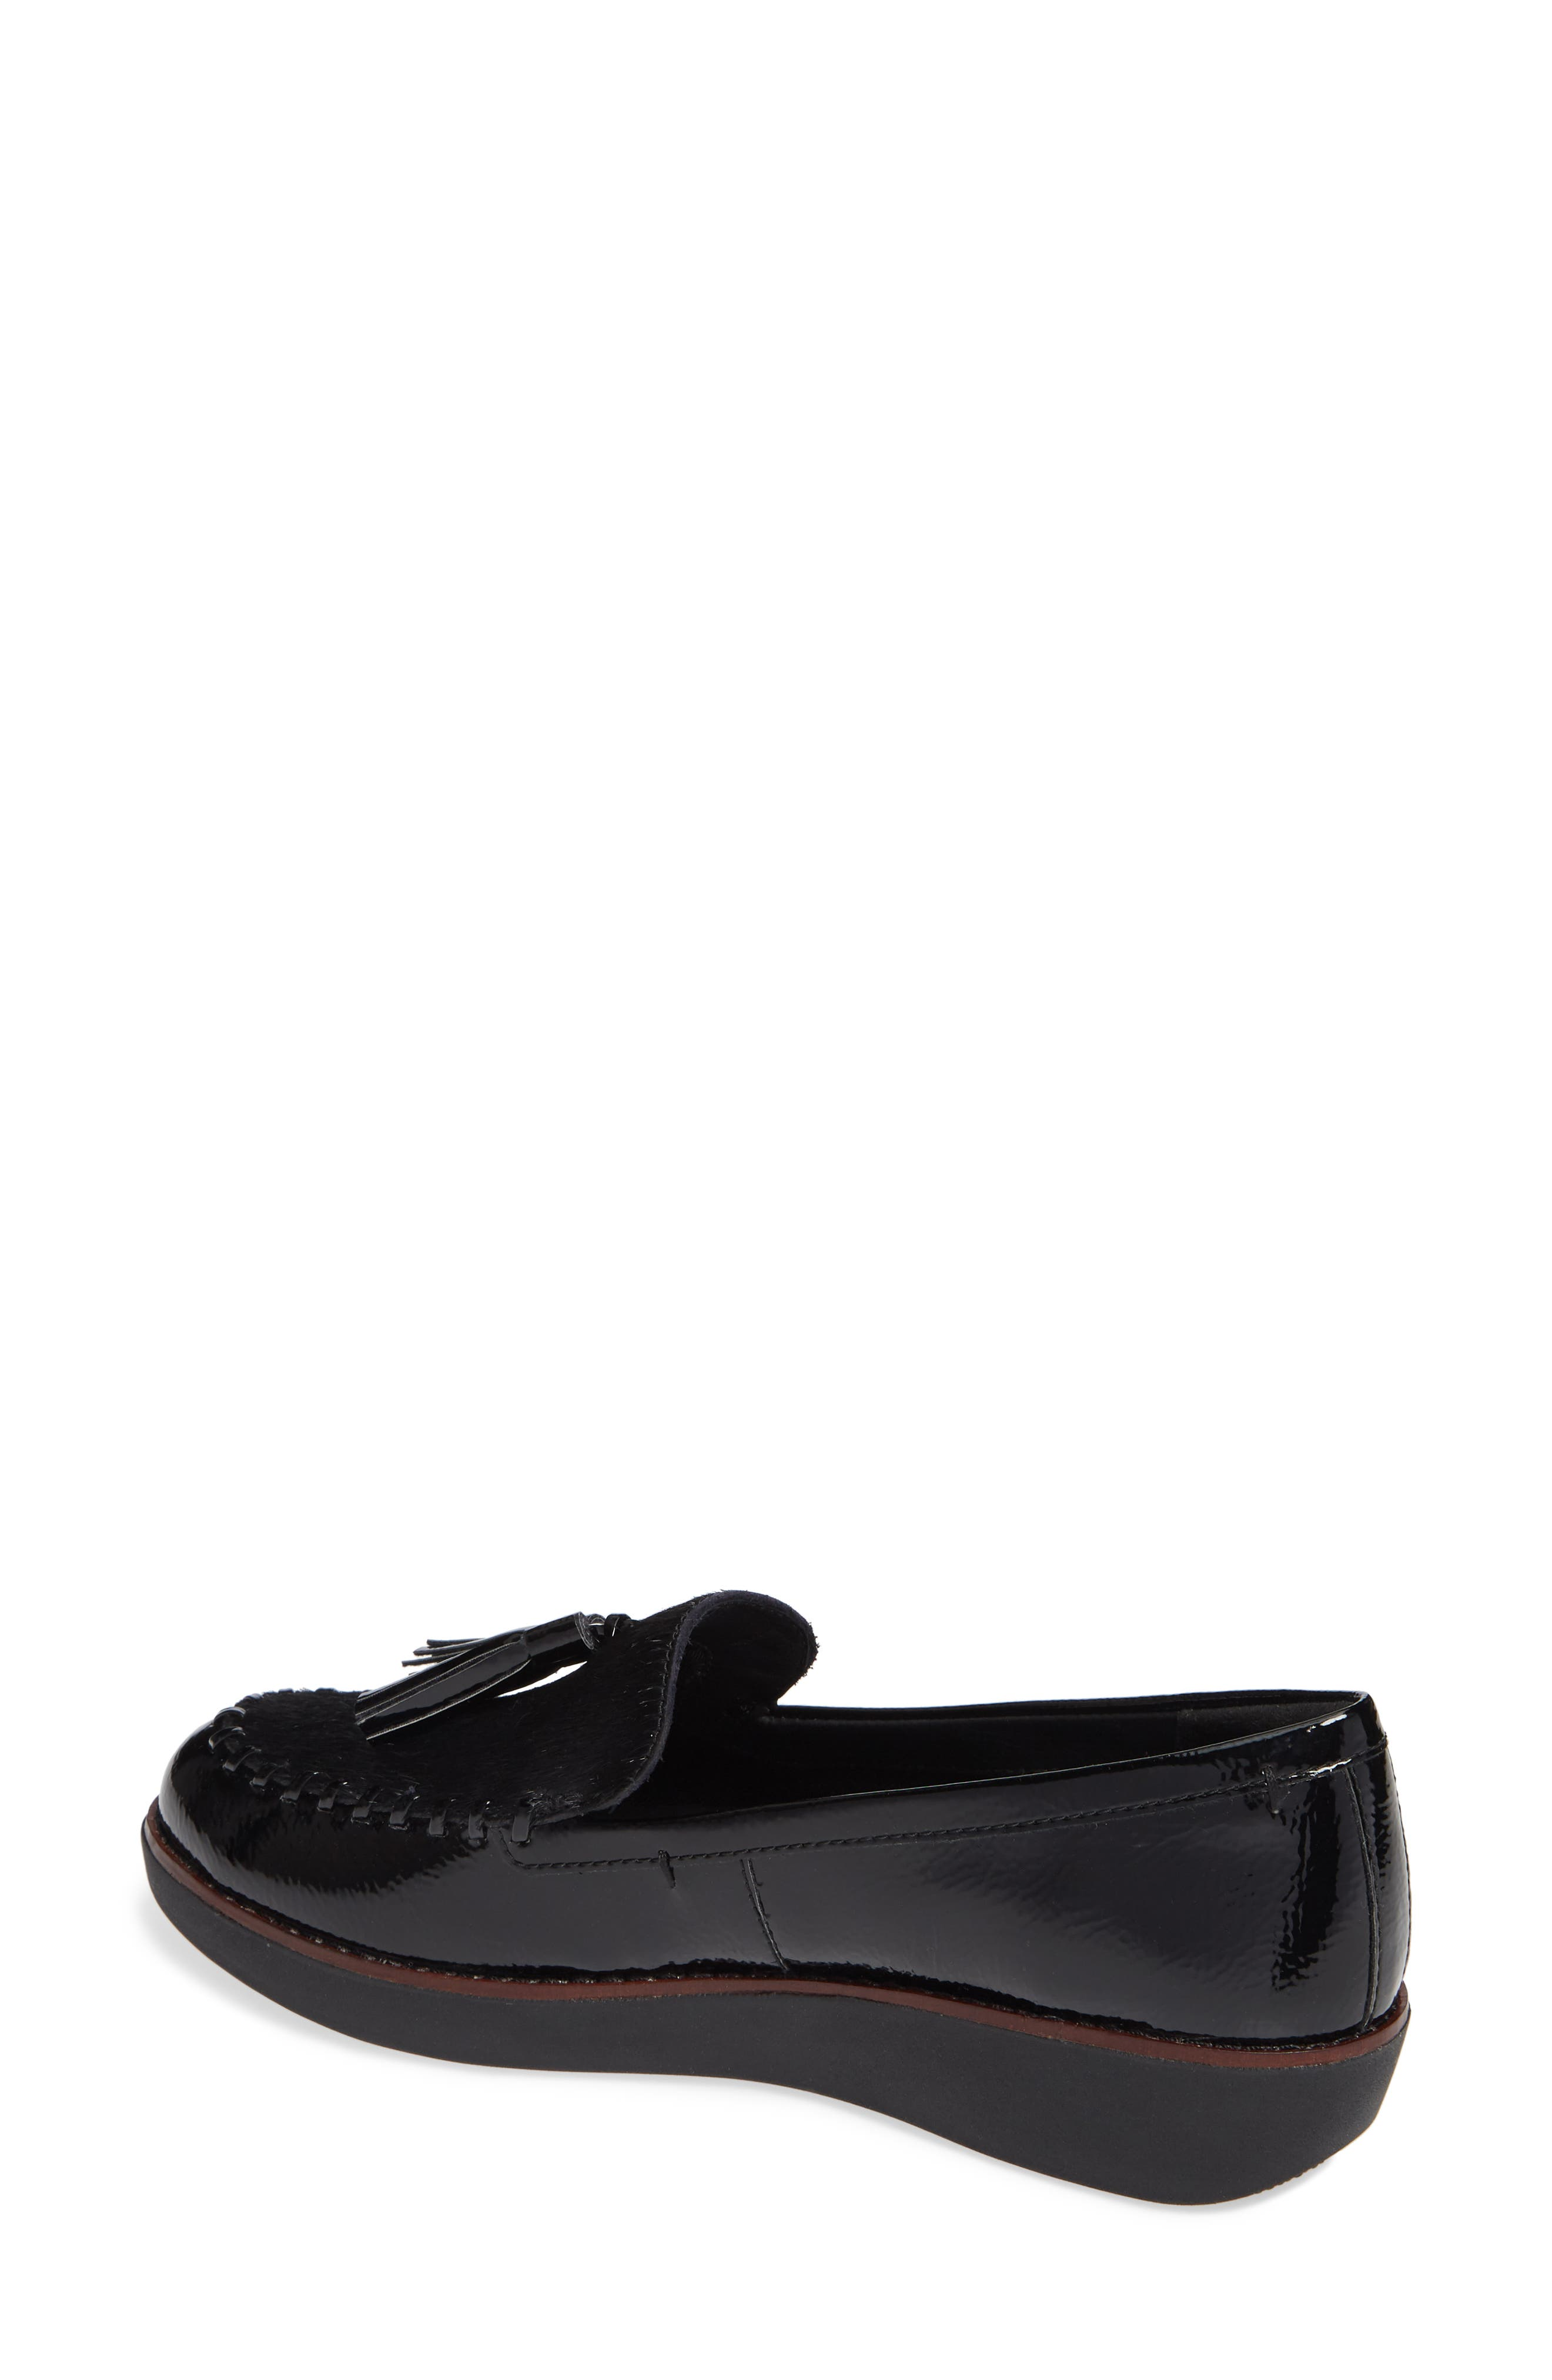 Petrina Genuine Calf Hair Loafer,                             Alternate thumbnail 2, color,                             BLACK FAUX LEATHER